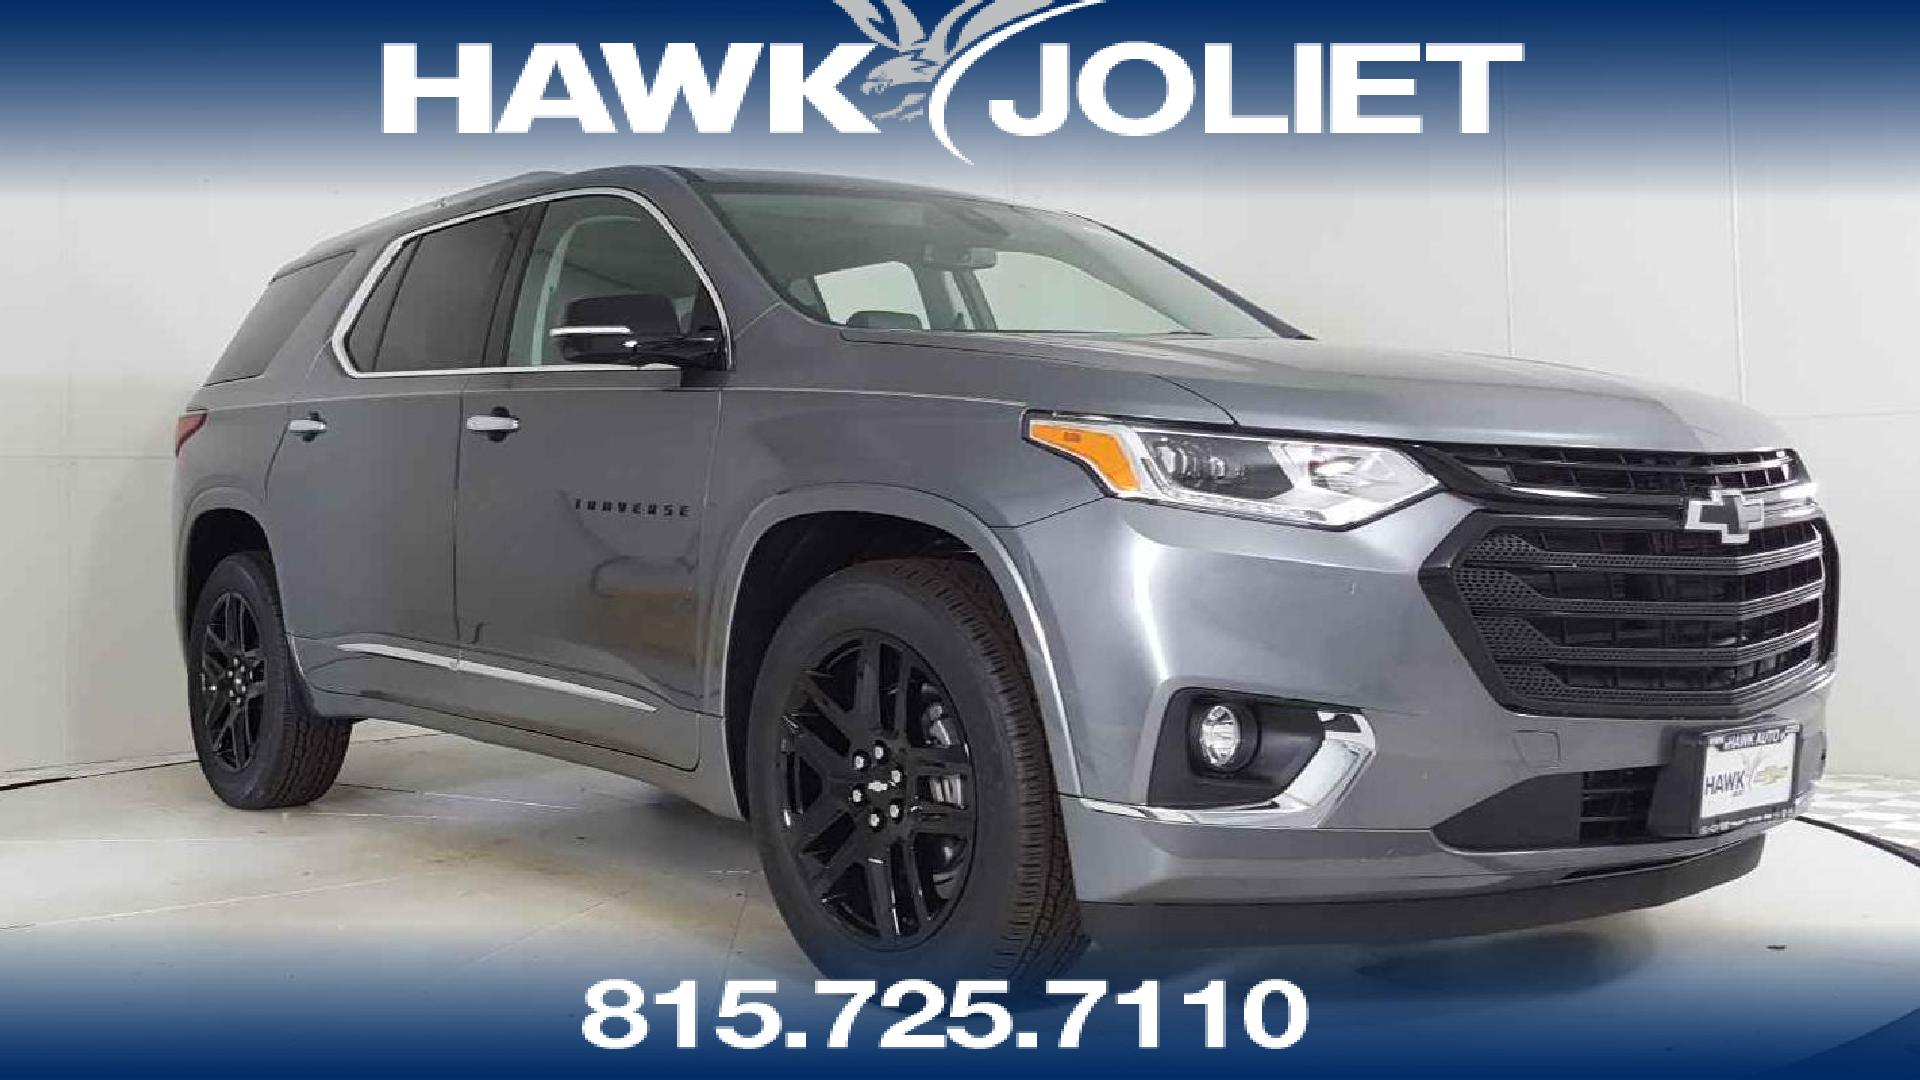 Joliet New Chevrolet Traverse Vehicles For Sale Fuel Filter 2018 Vehicle Photo In Il 60435